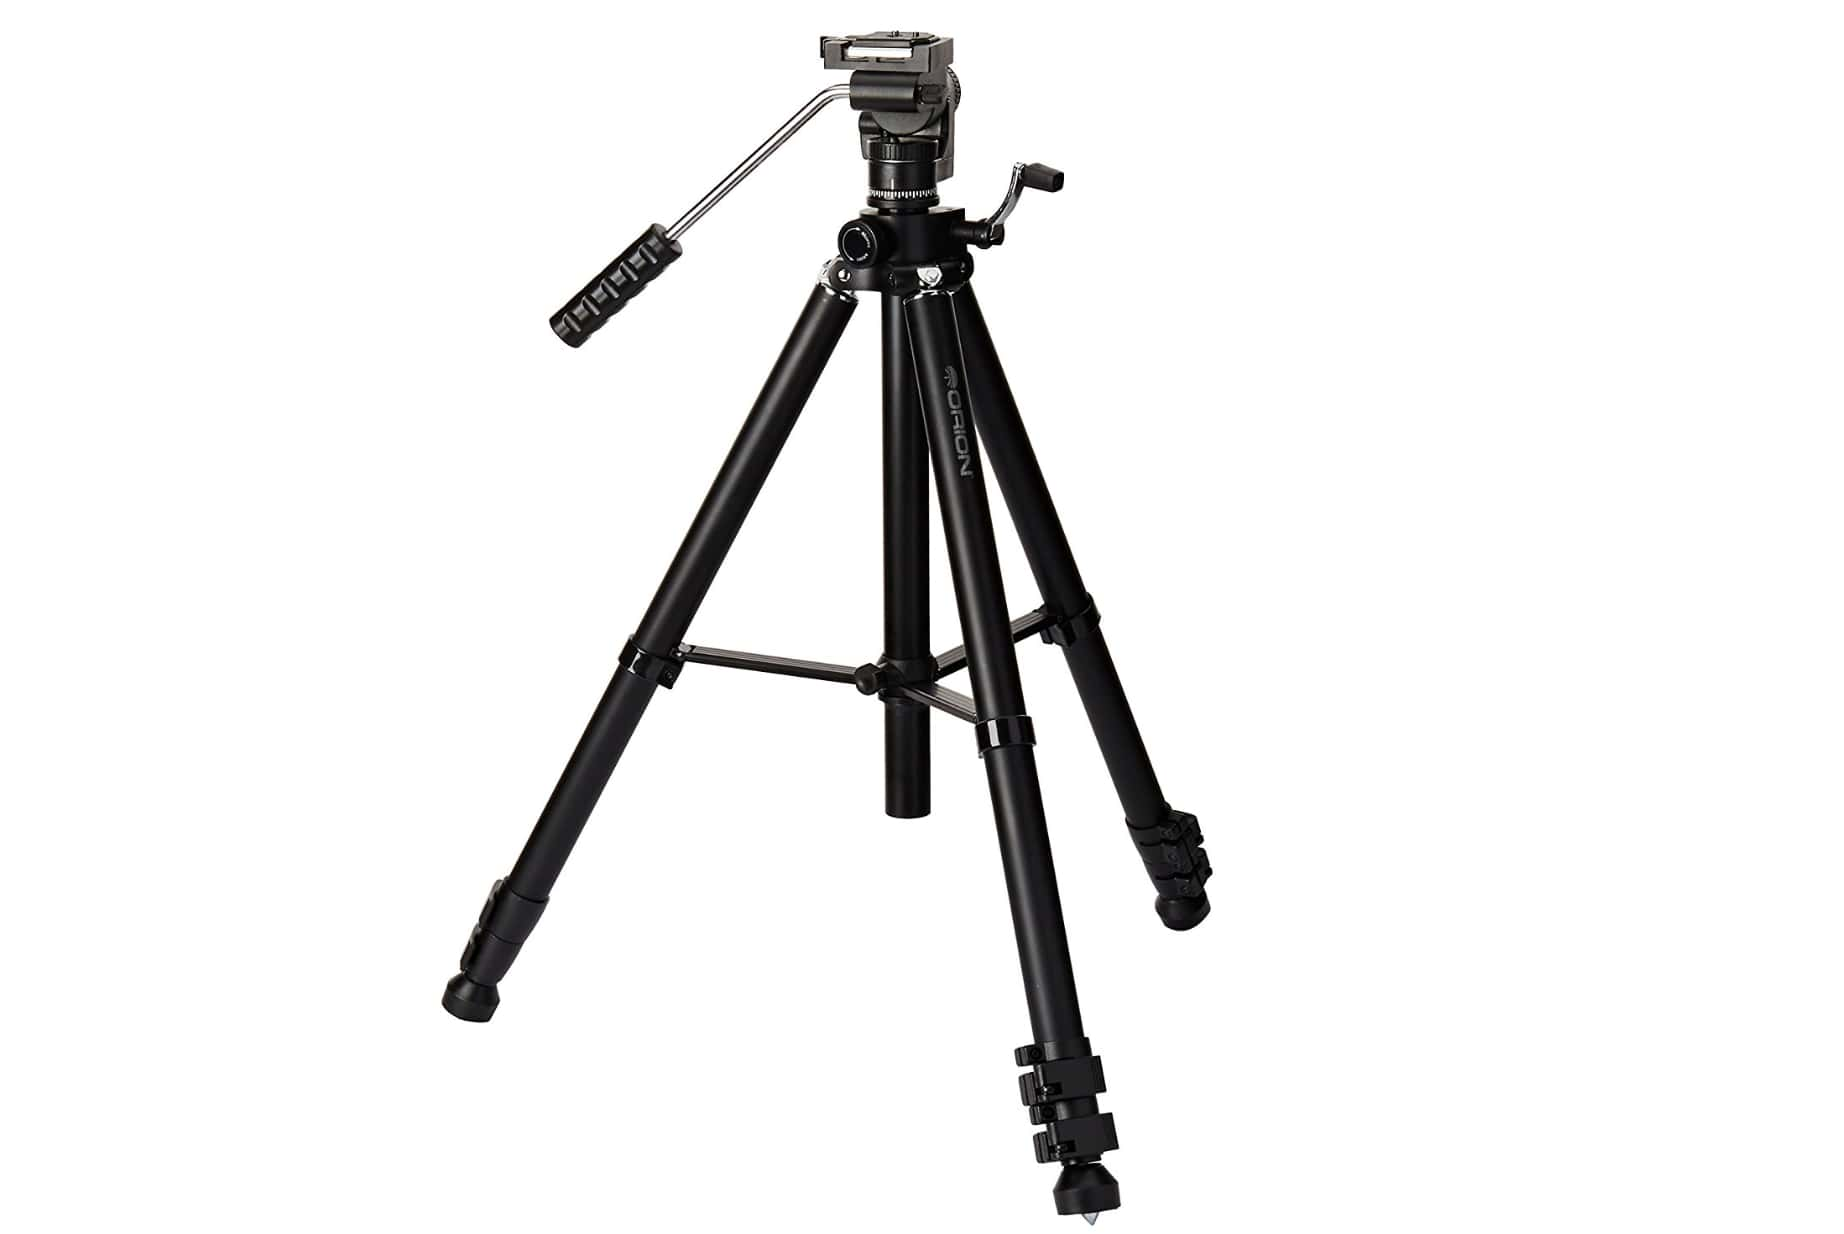 Best Glassing Tripods Orion 5378 Paragon HD-F2 Tripod